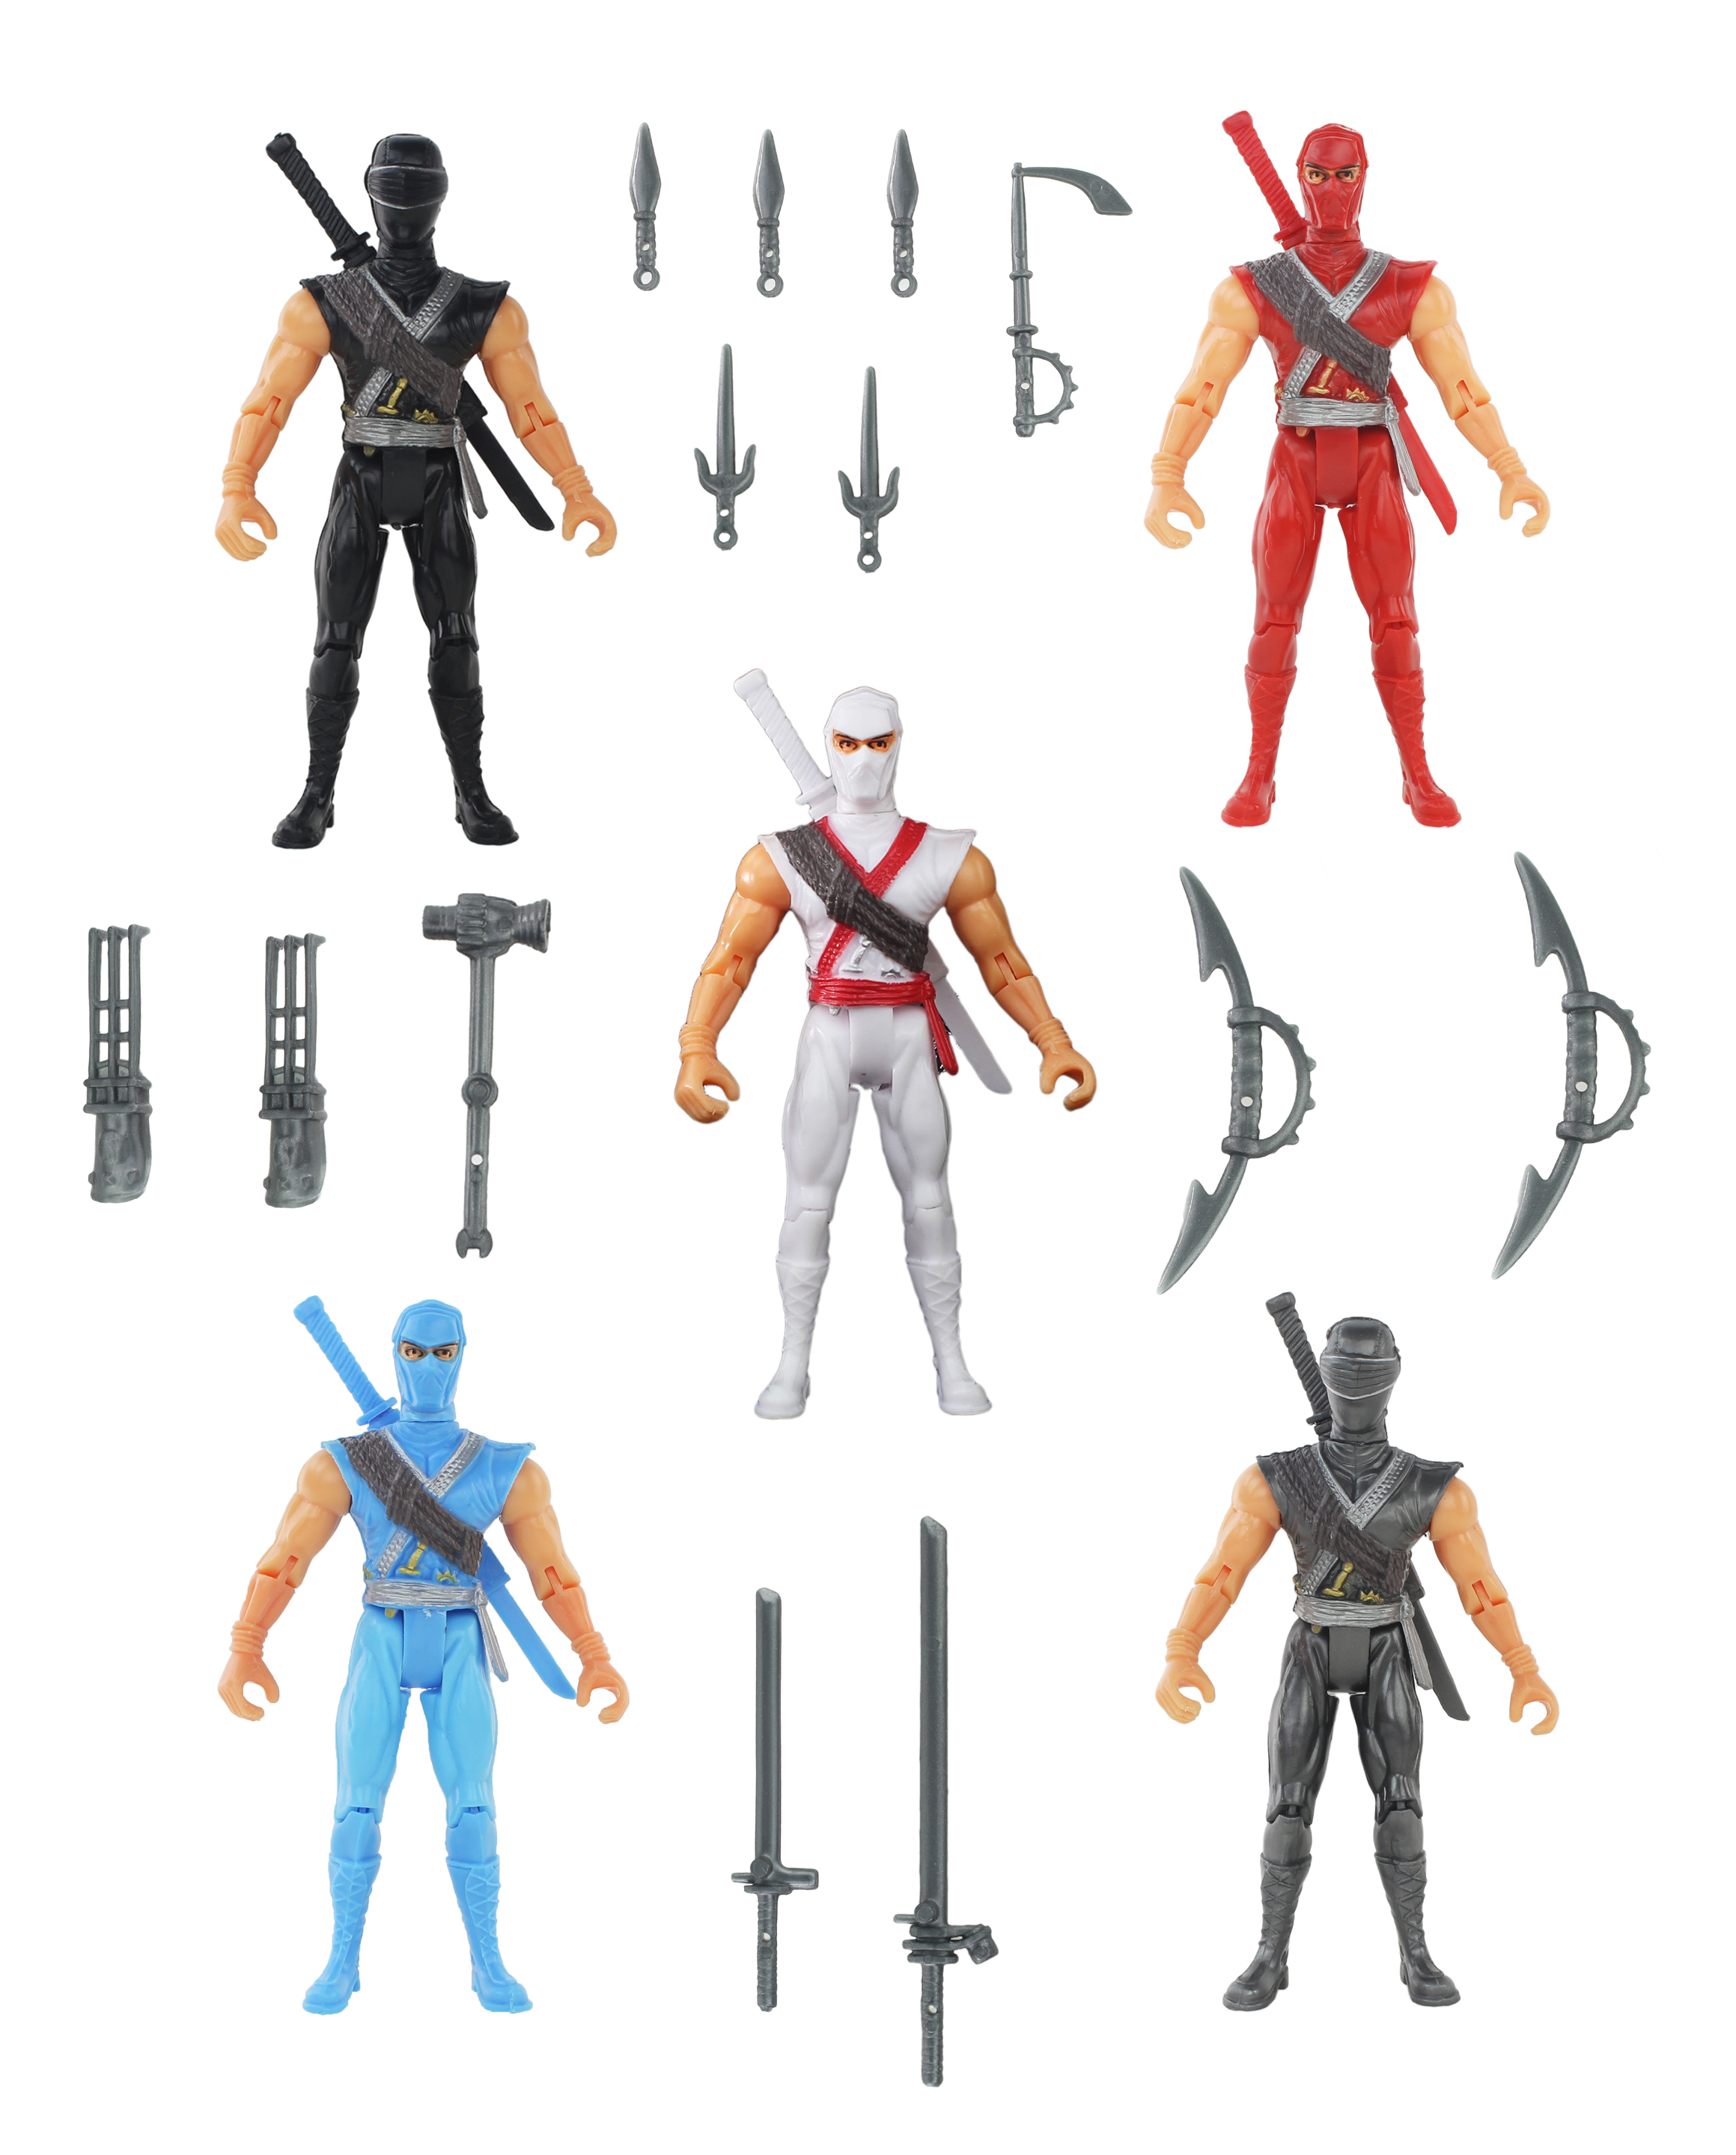 Super Cyber Ninja League Squad Action Figure Playset, Fun Set of Action Figures, Heroes... by Velocity Toys